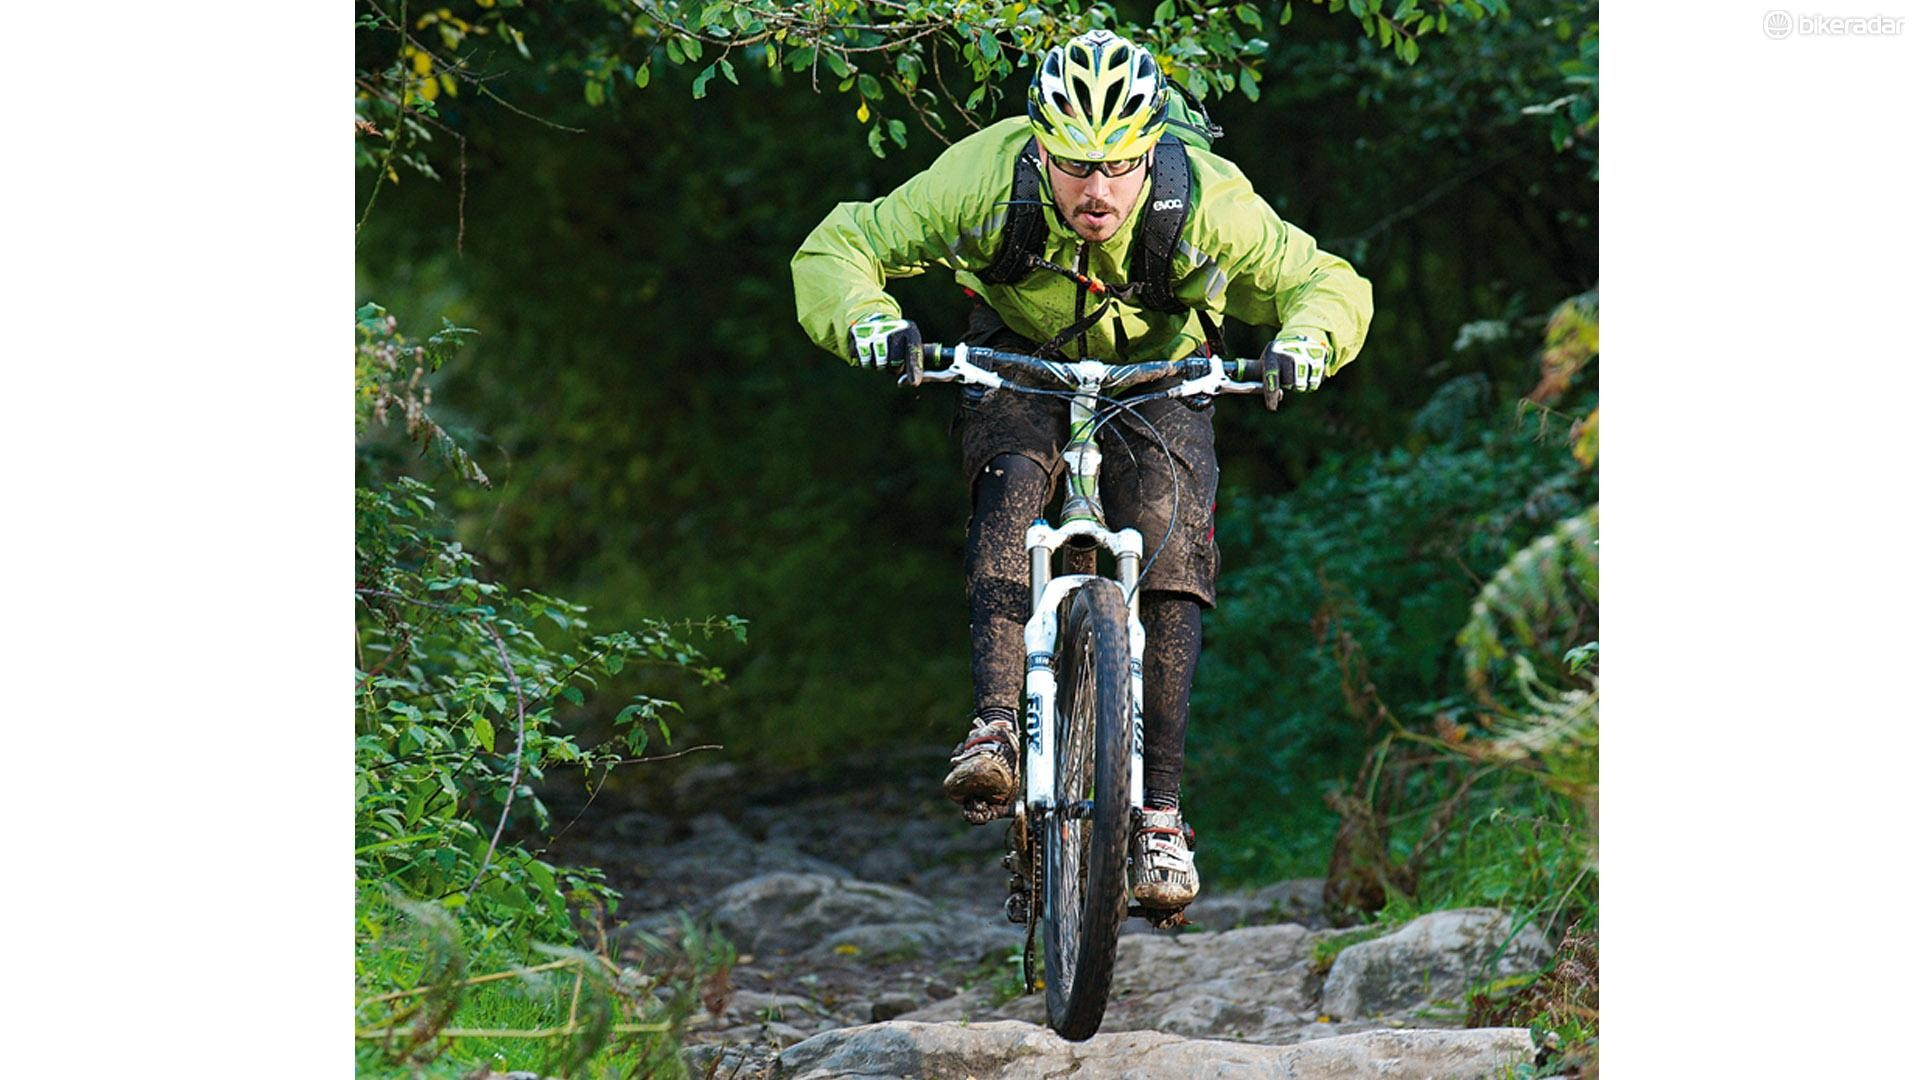 Make like you're on singletrack and try to keep going in a straight line